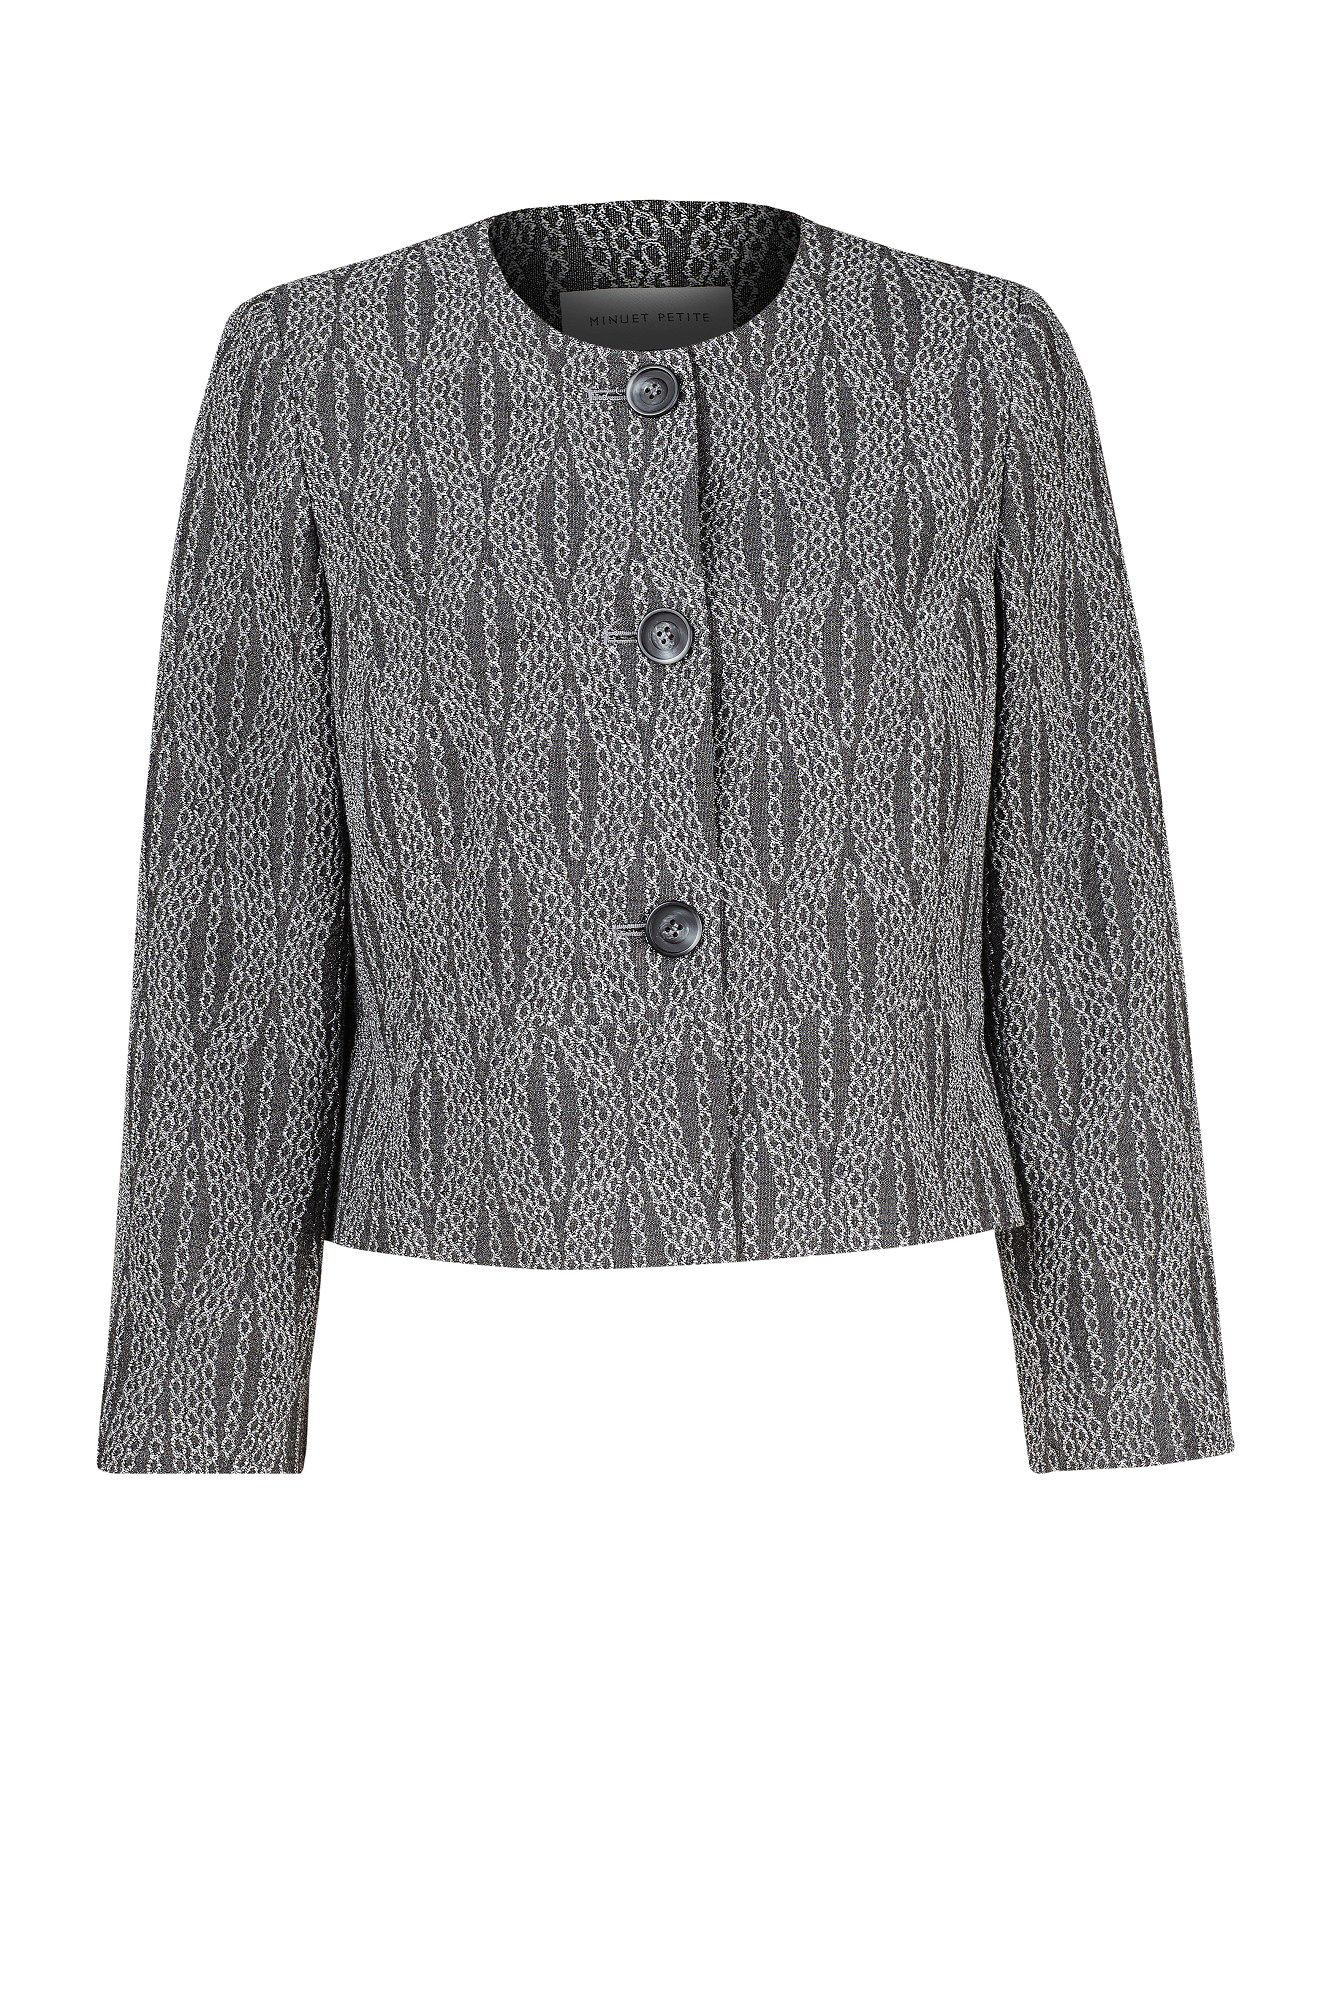 Linear spot textured jacket